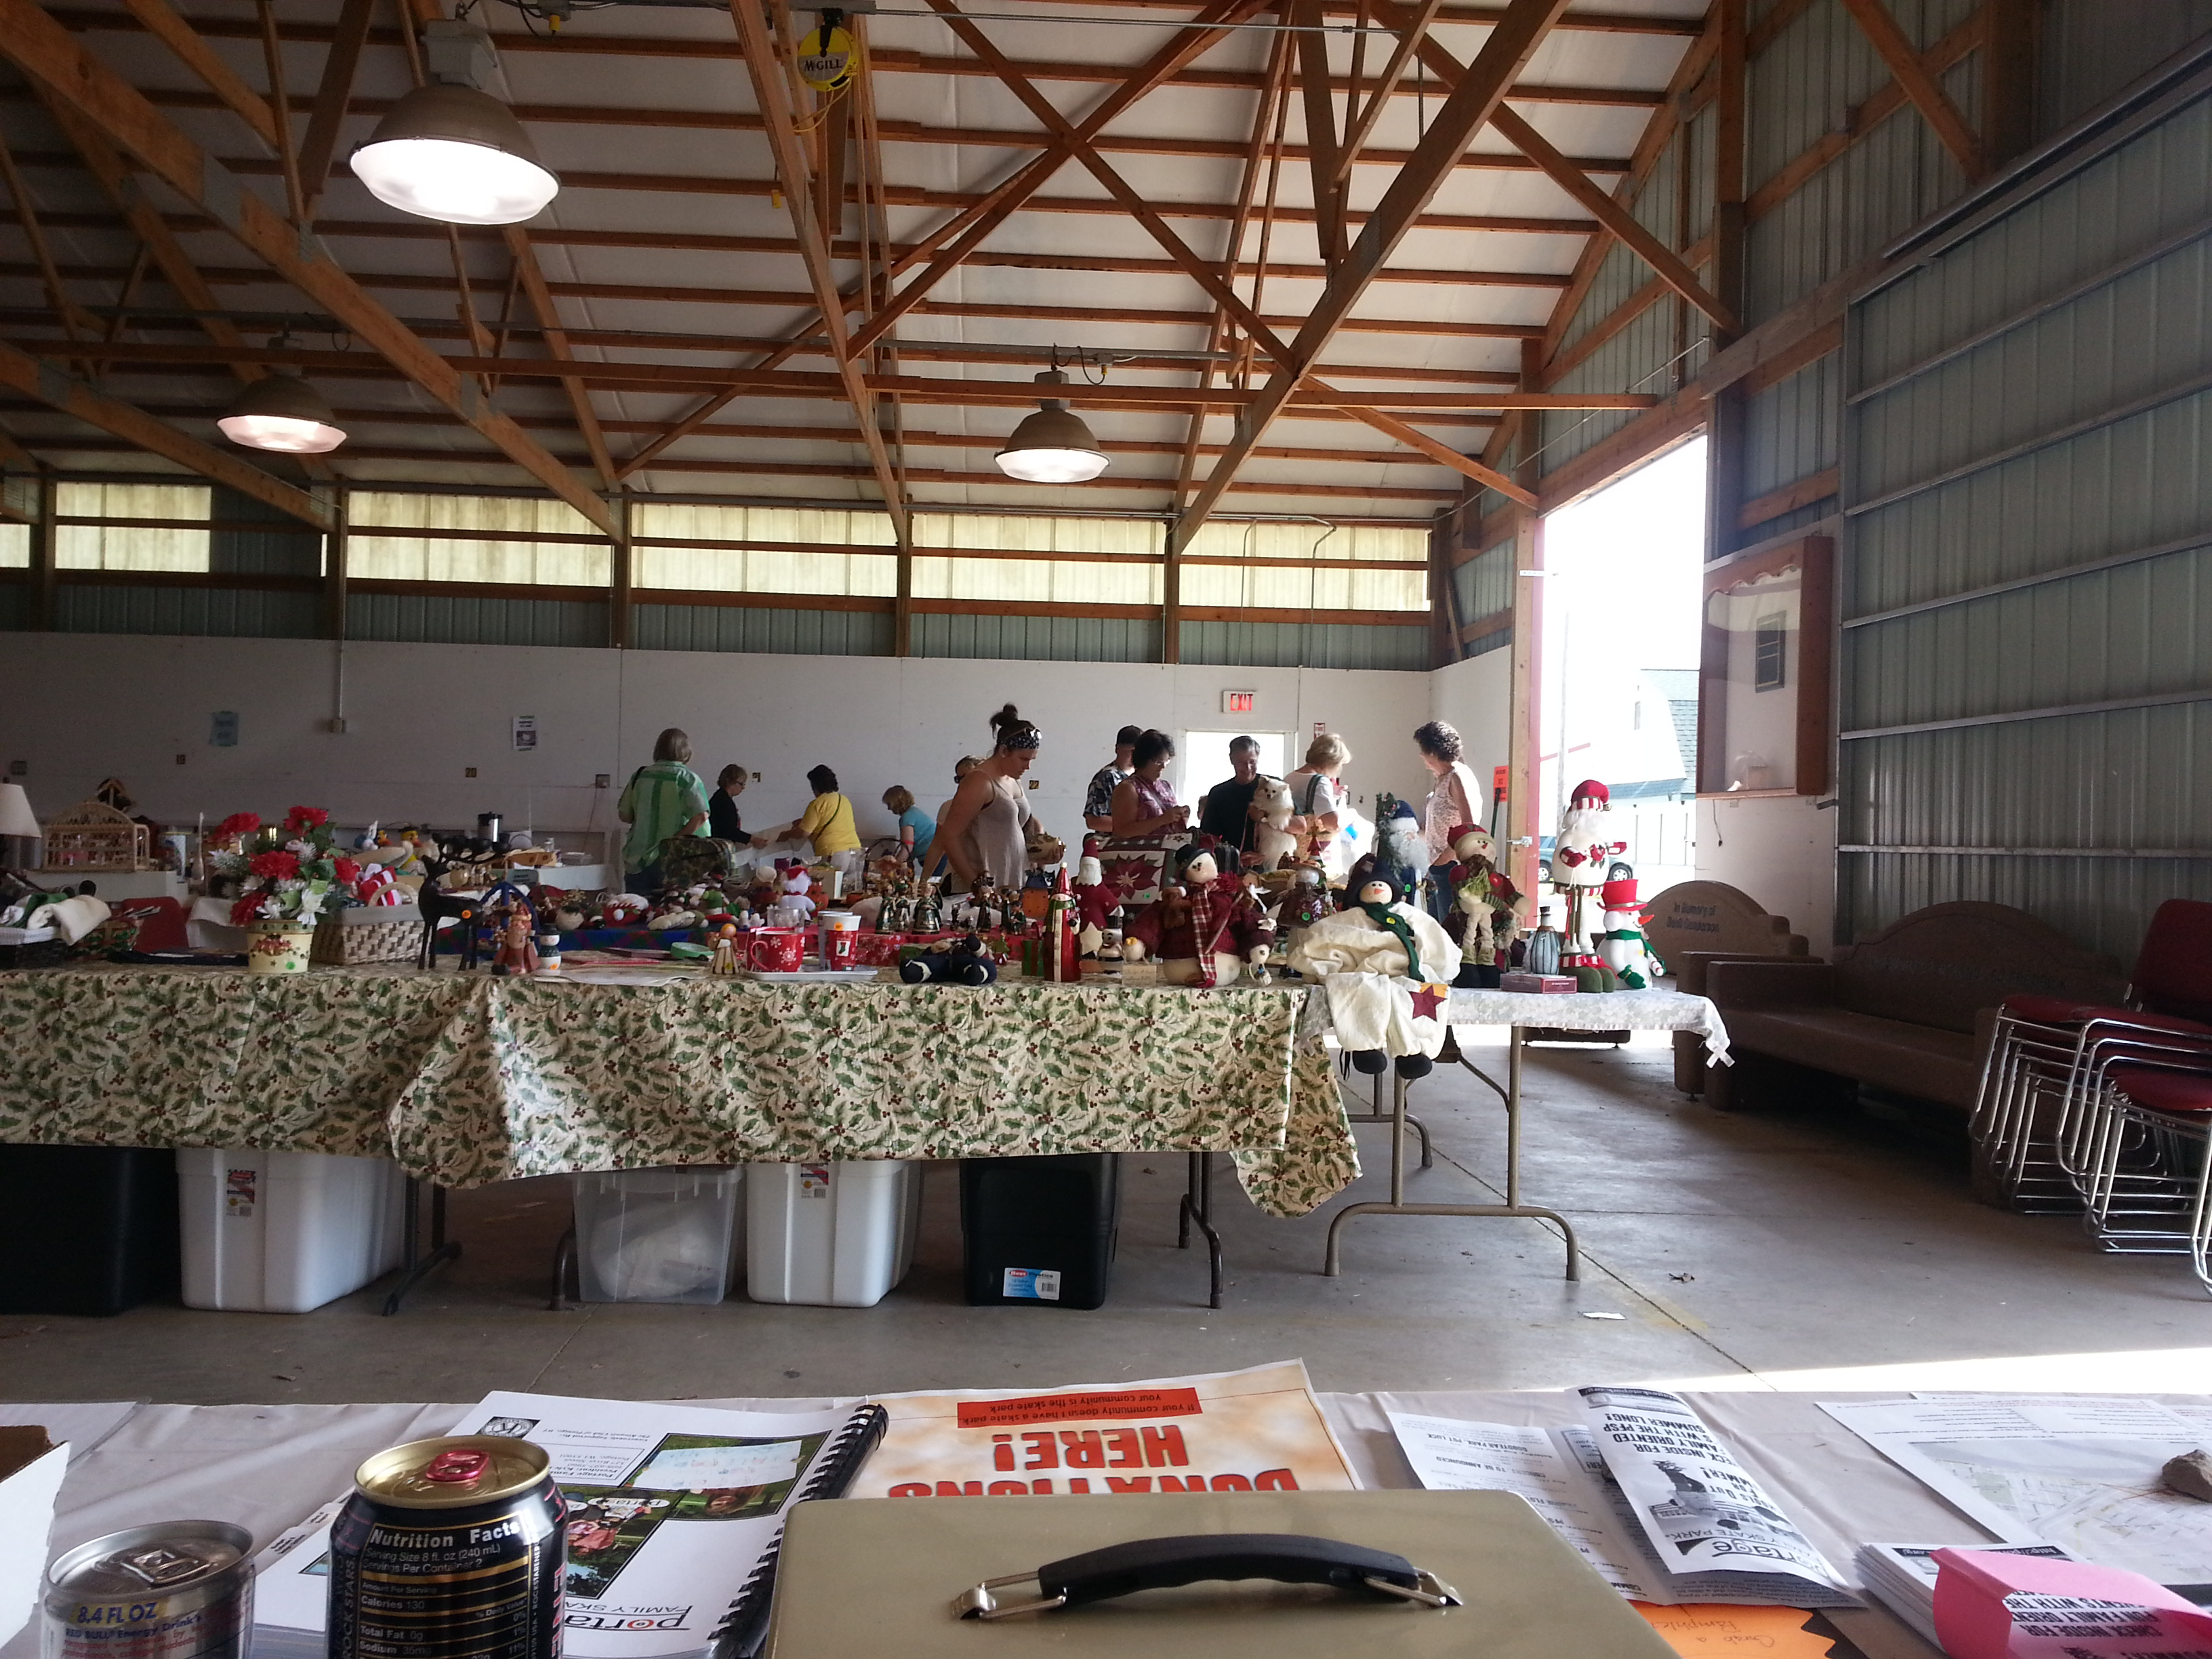 Portage Annual City Flea Market & Craft Show cooking up with the PFSP.